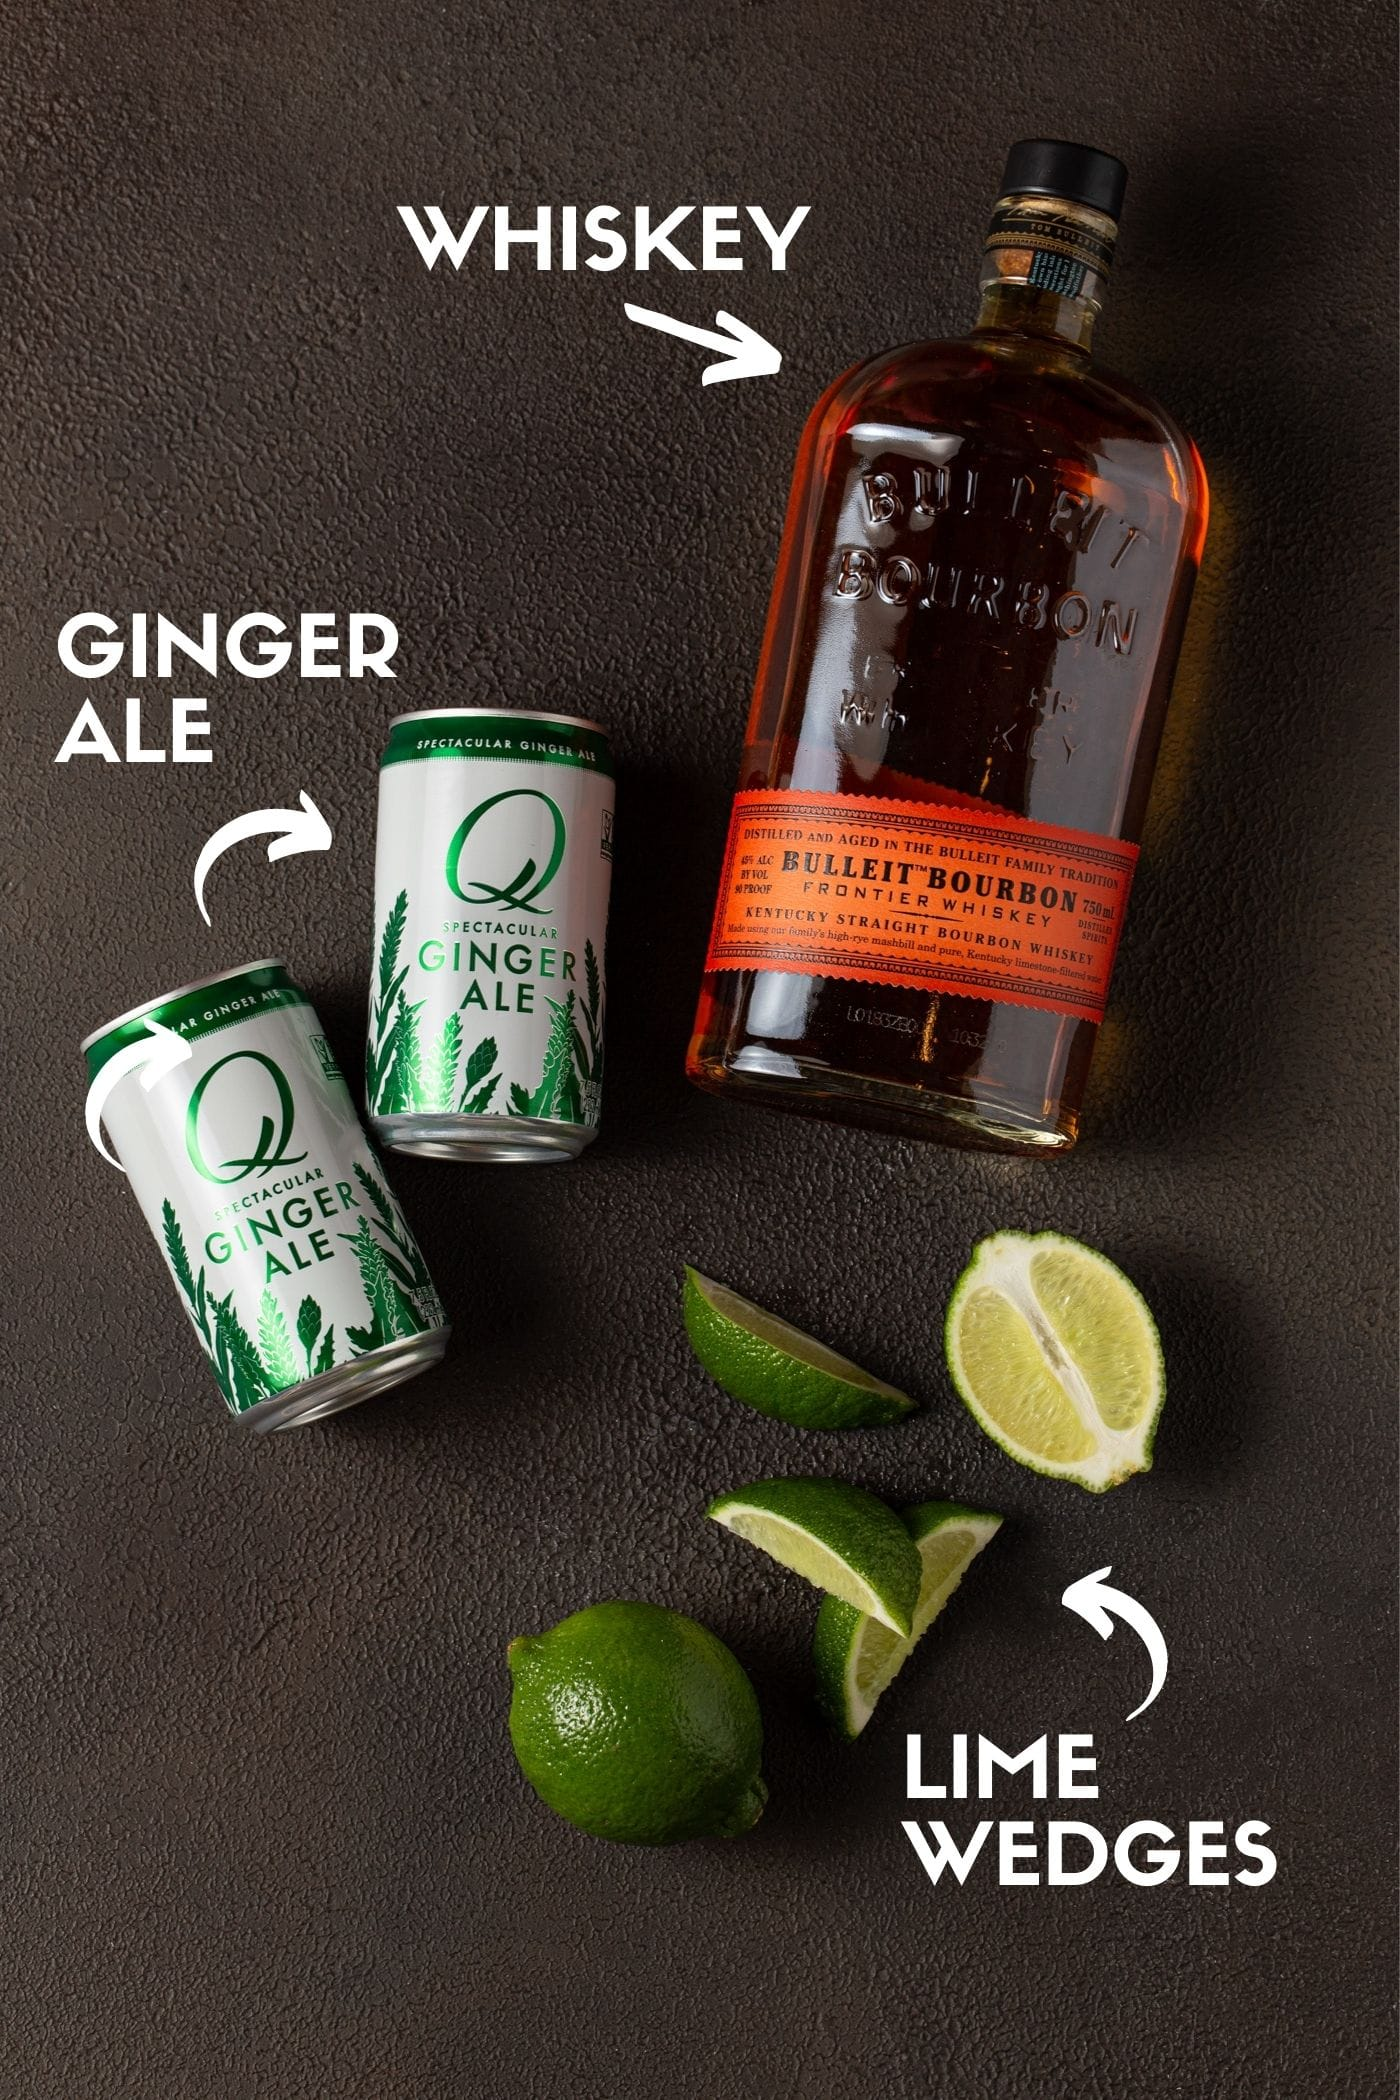 Ingredients for Whiskey Ginger drink, including, whiskey, ginger ale and lime wedges